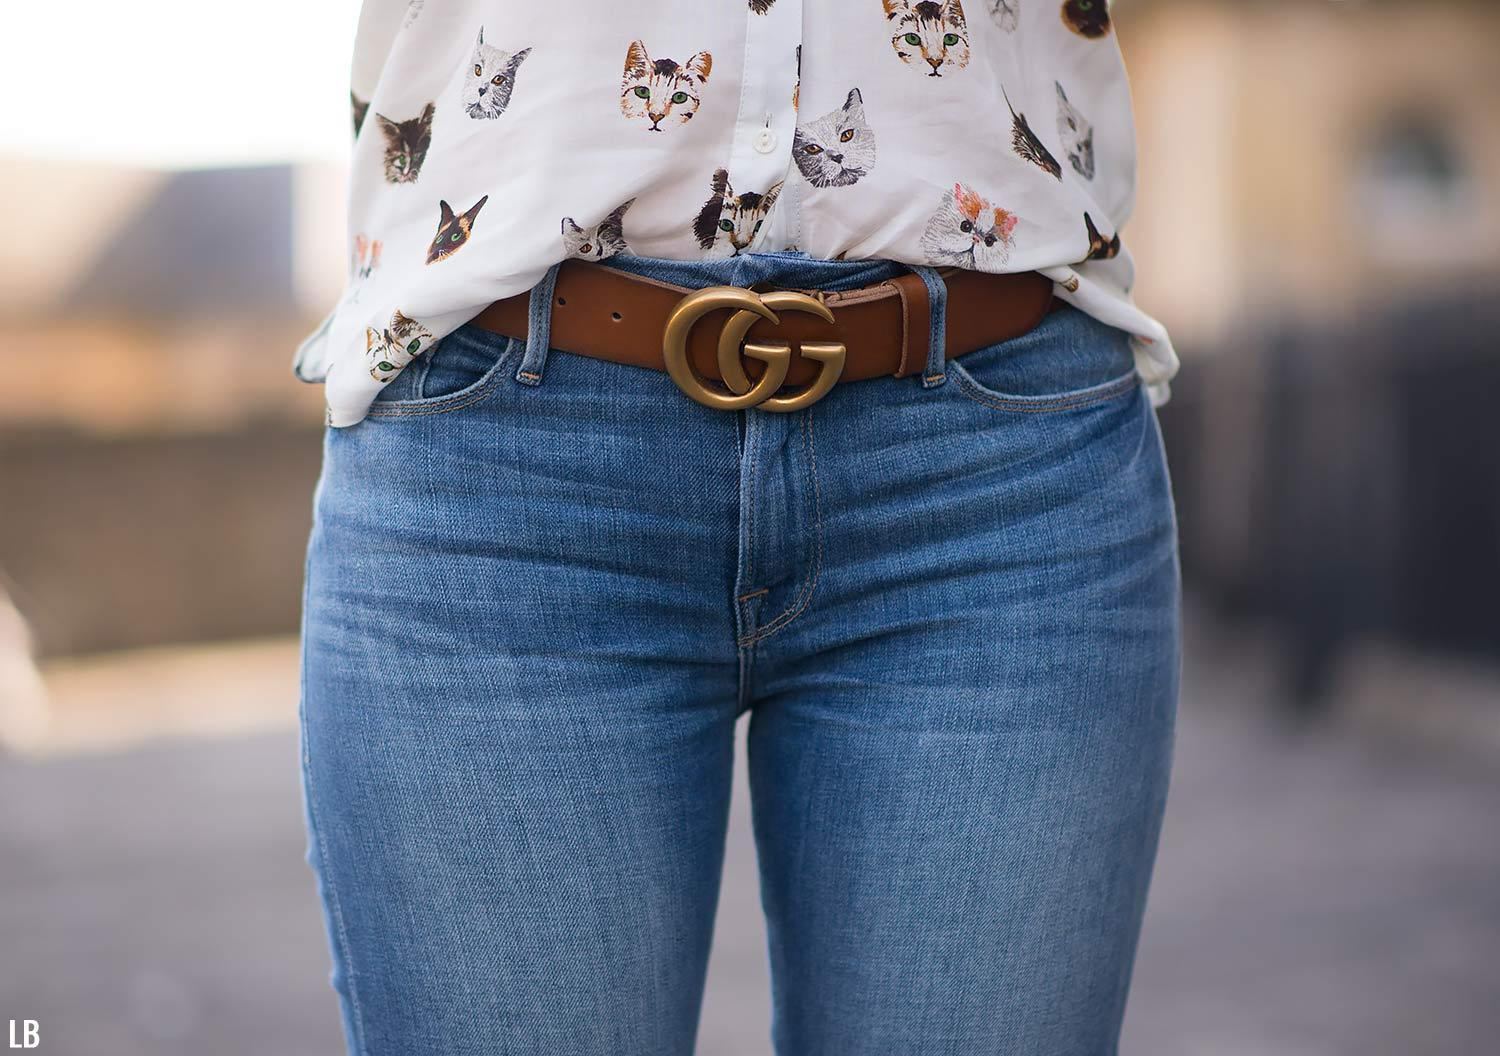 1f641585b61 Overall Opinion – I literally have nothing bad at all to say about this belt.  I am completely in love with the design of it